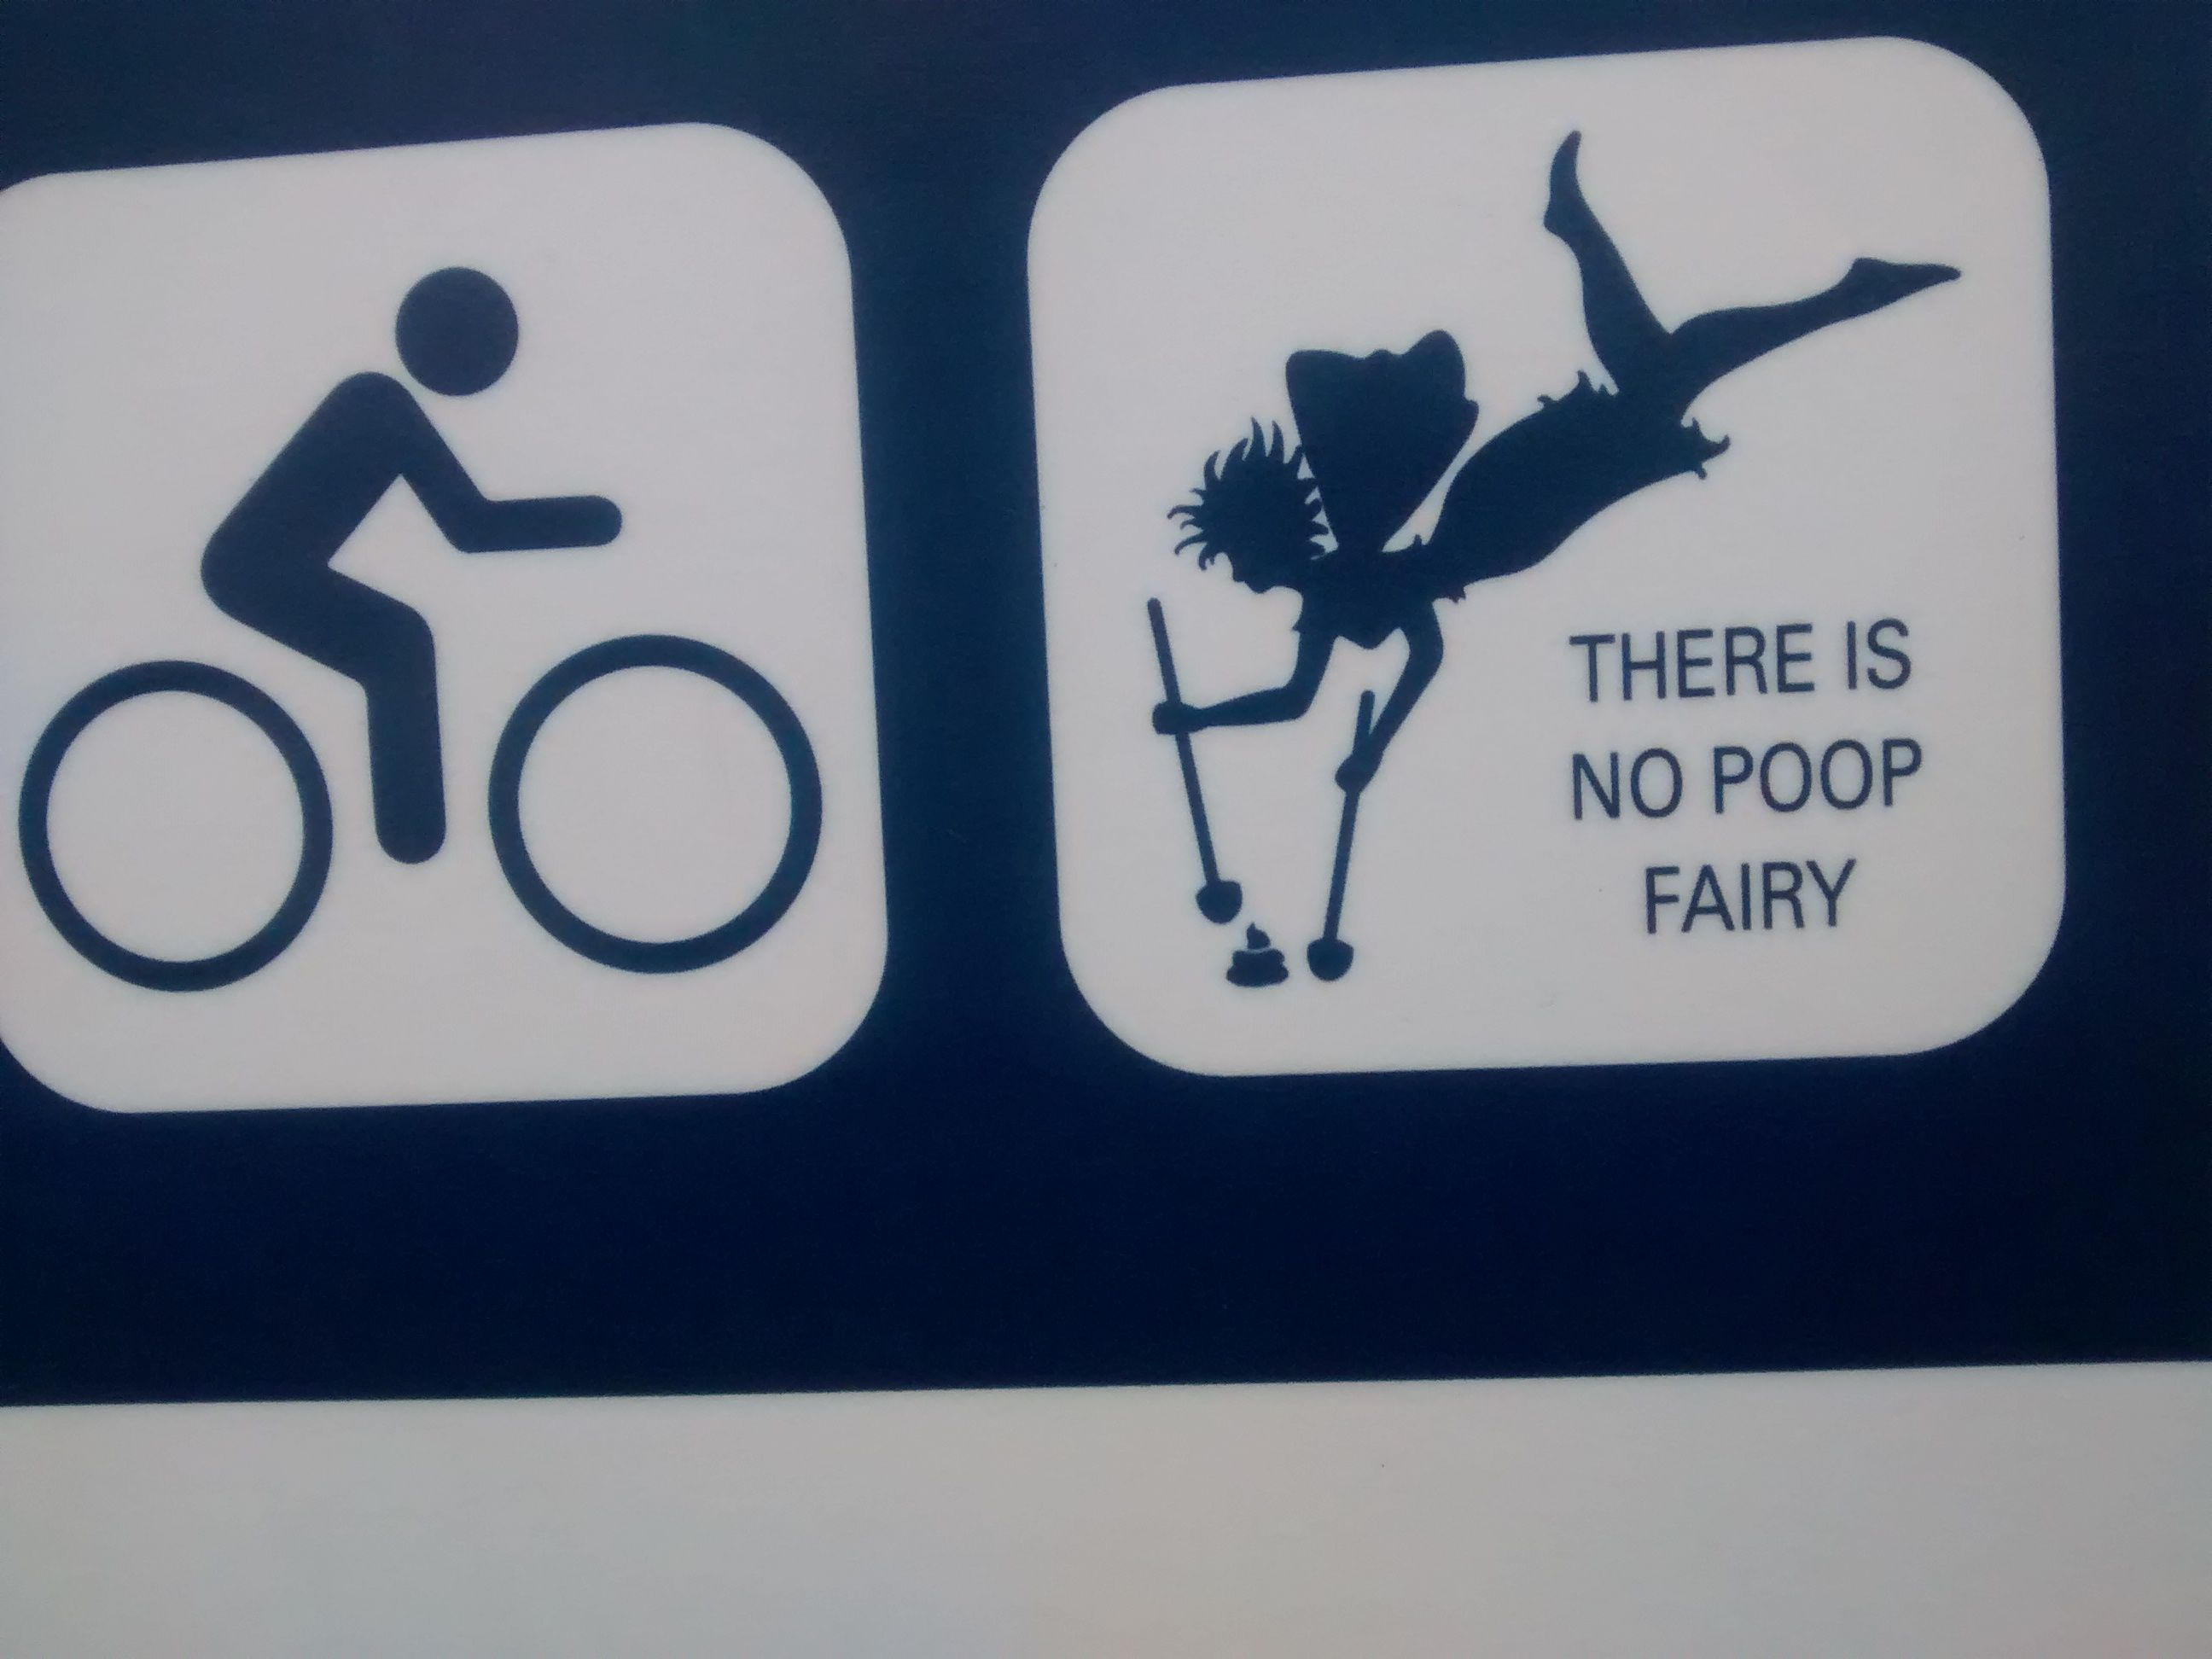 Park City Utah Trail Sign There Is No Poop Fairy Omdc